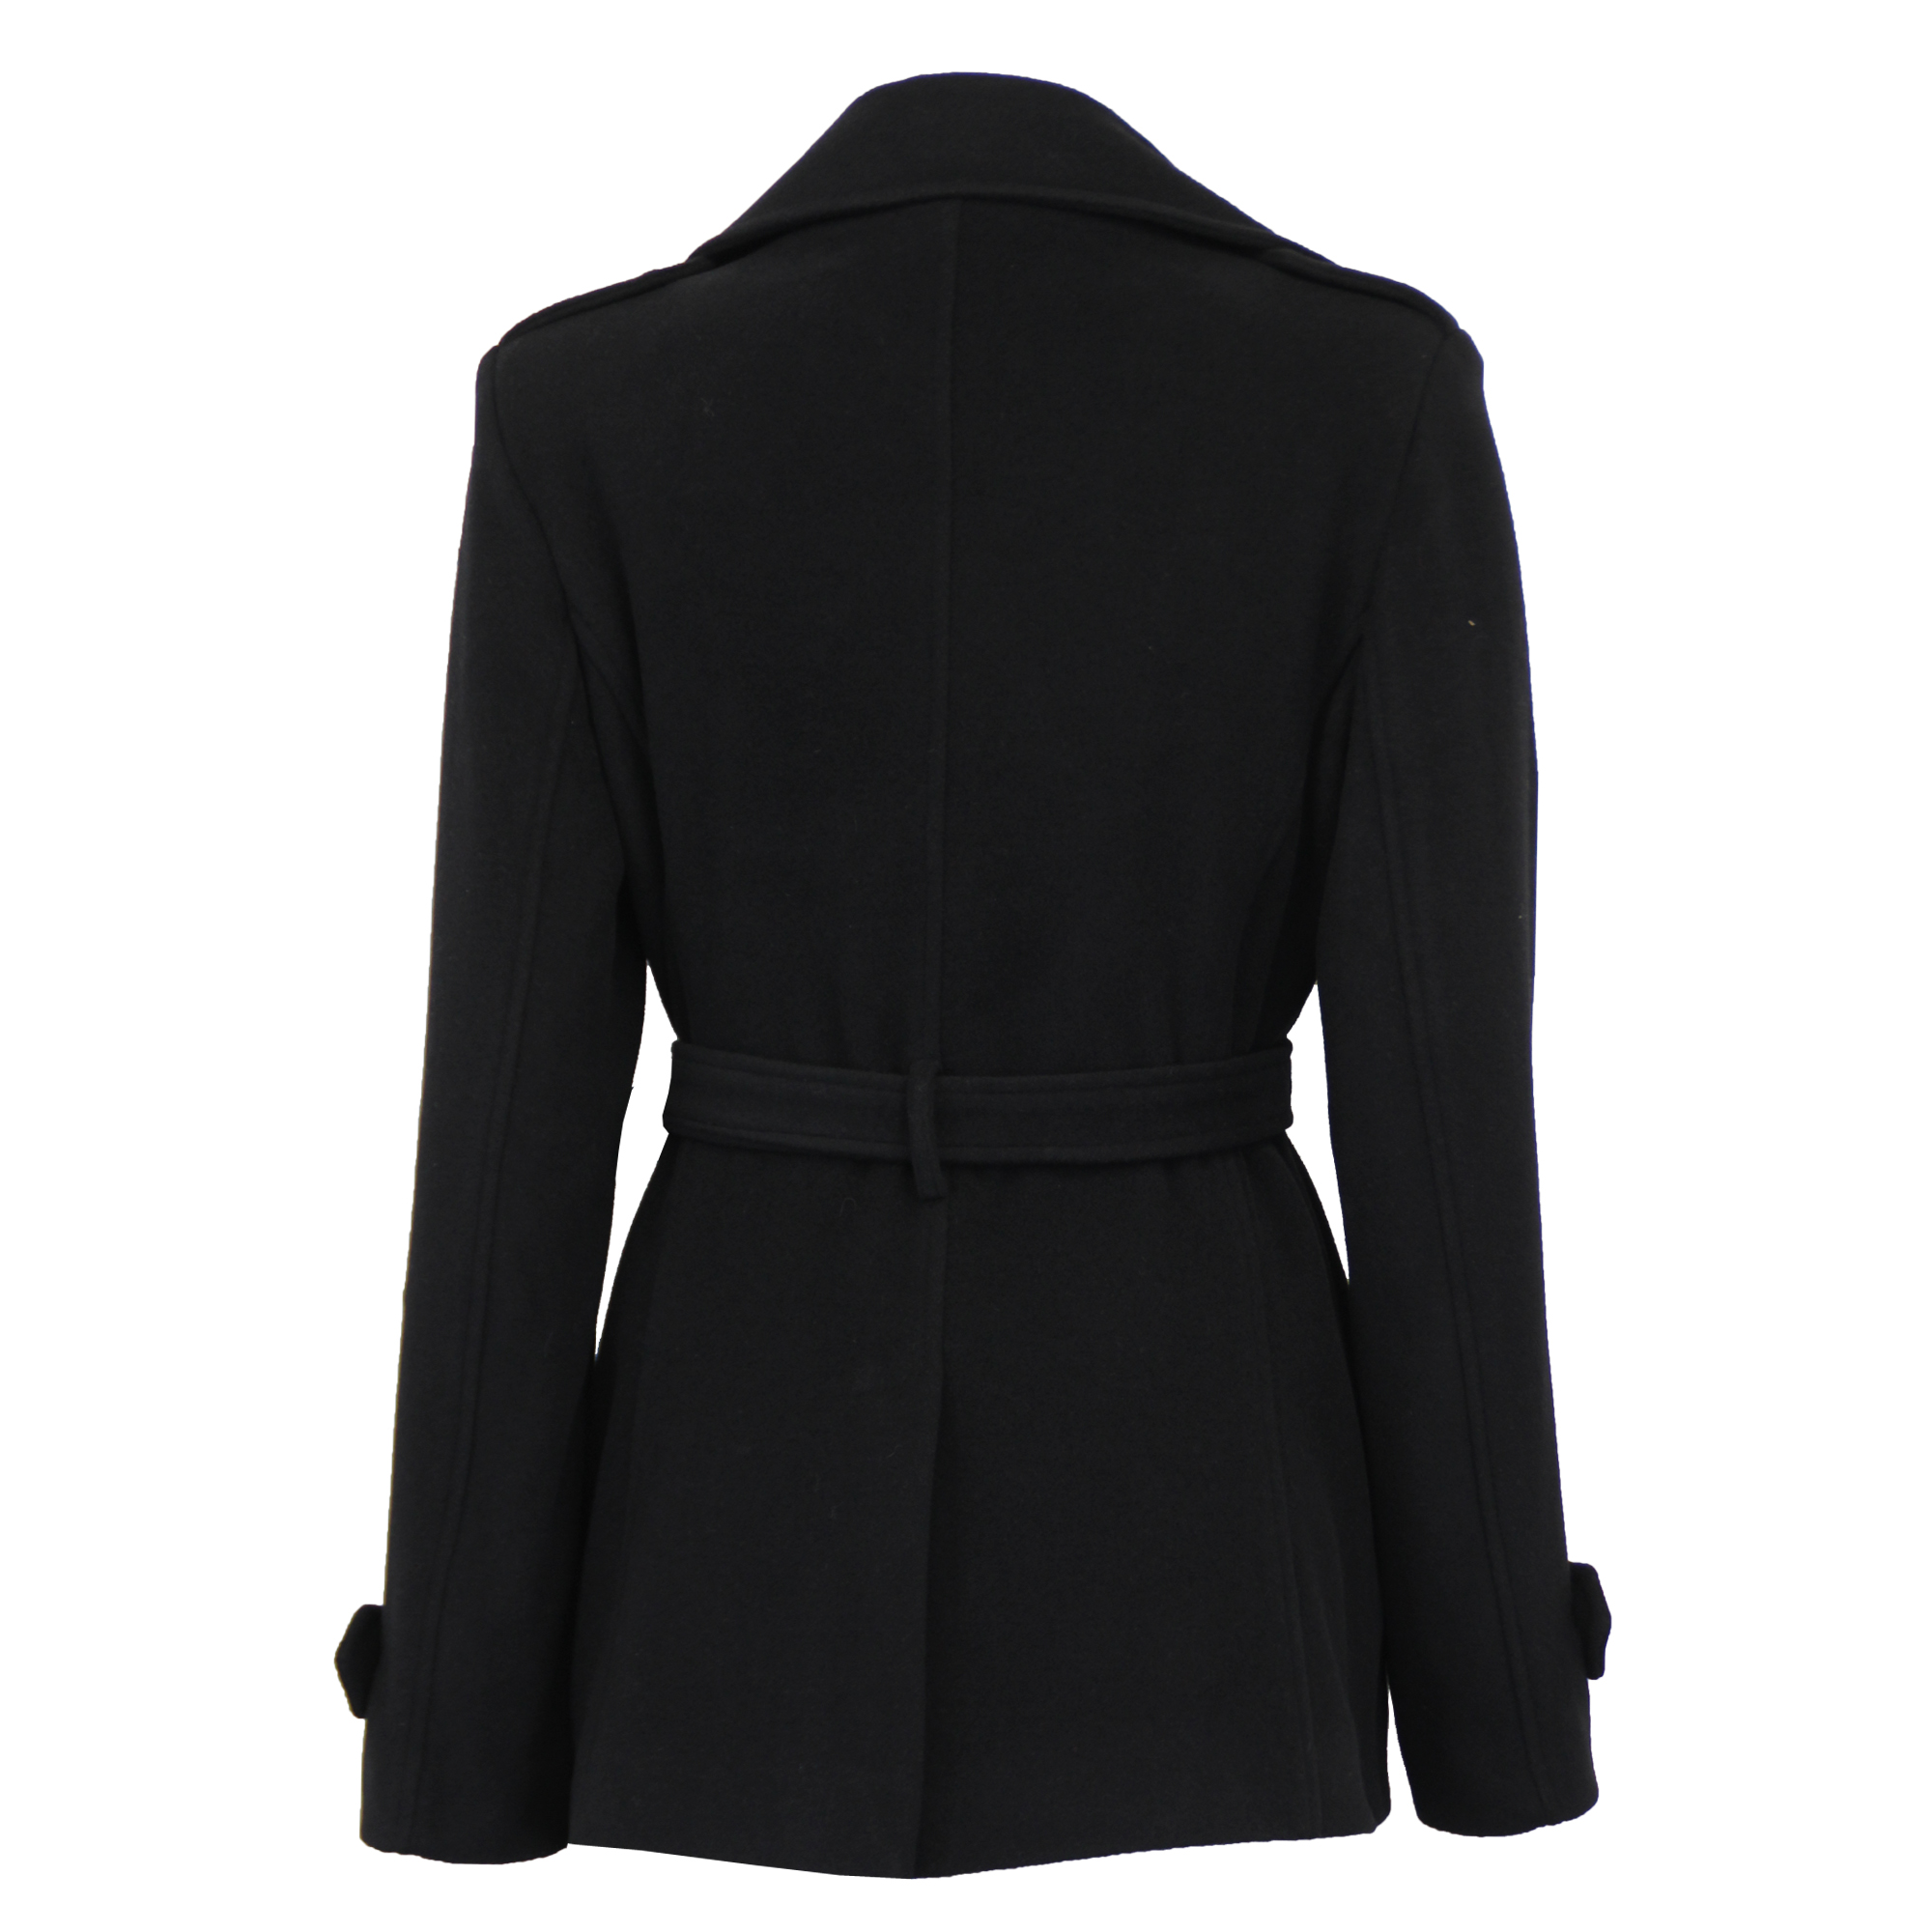 Ladies-Wool-Cashmere-Coat-Womens-Jacket-Double-Breasted-Belt-Checked-Trench-New thumbnail 3